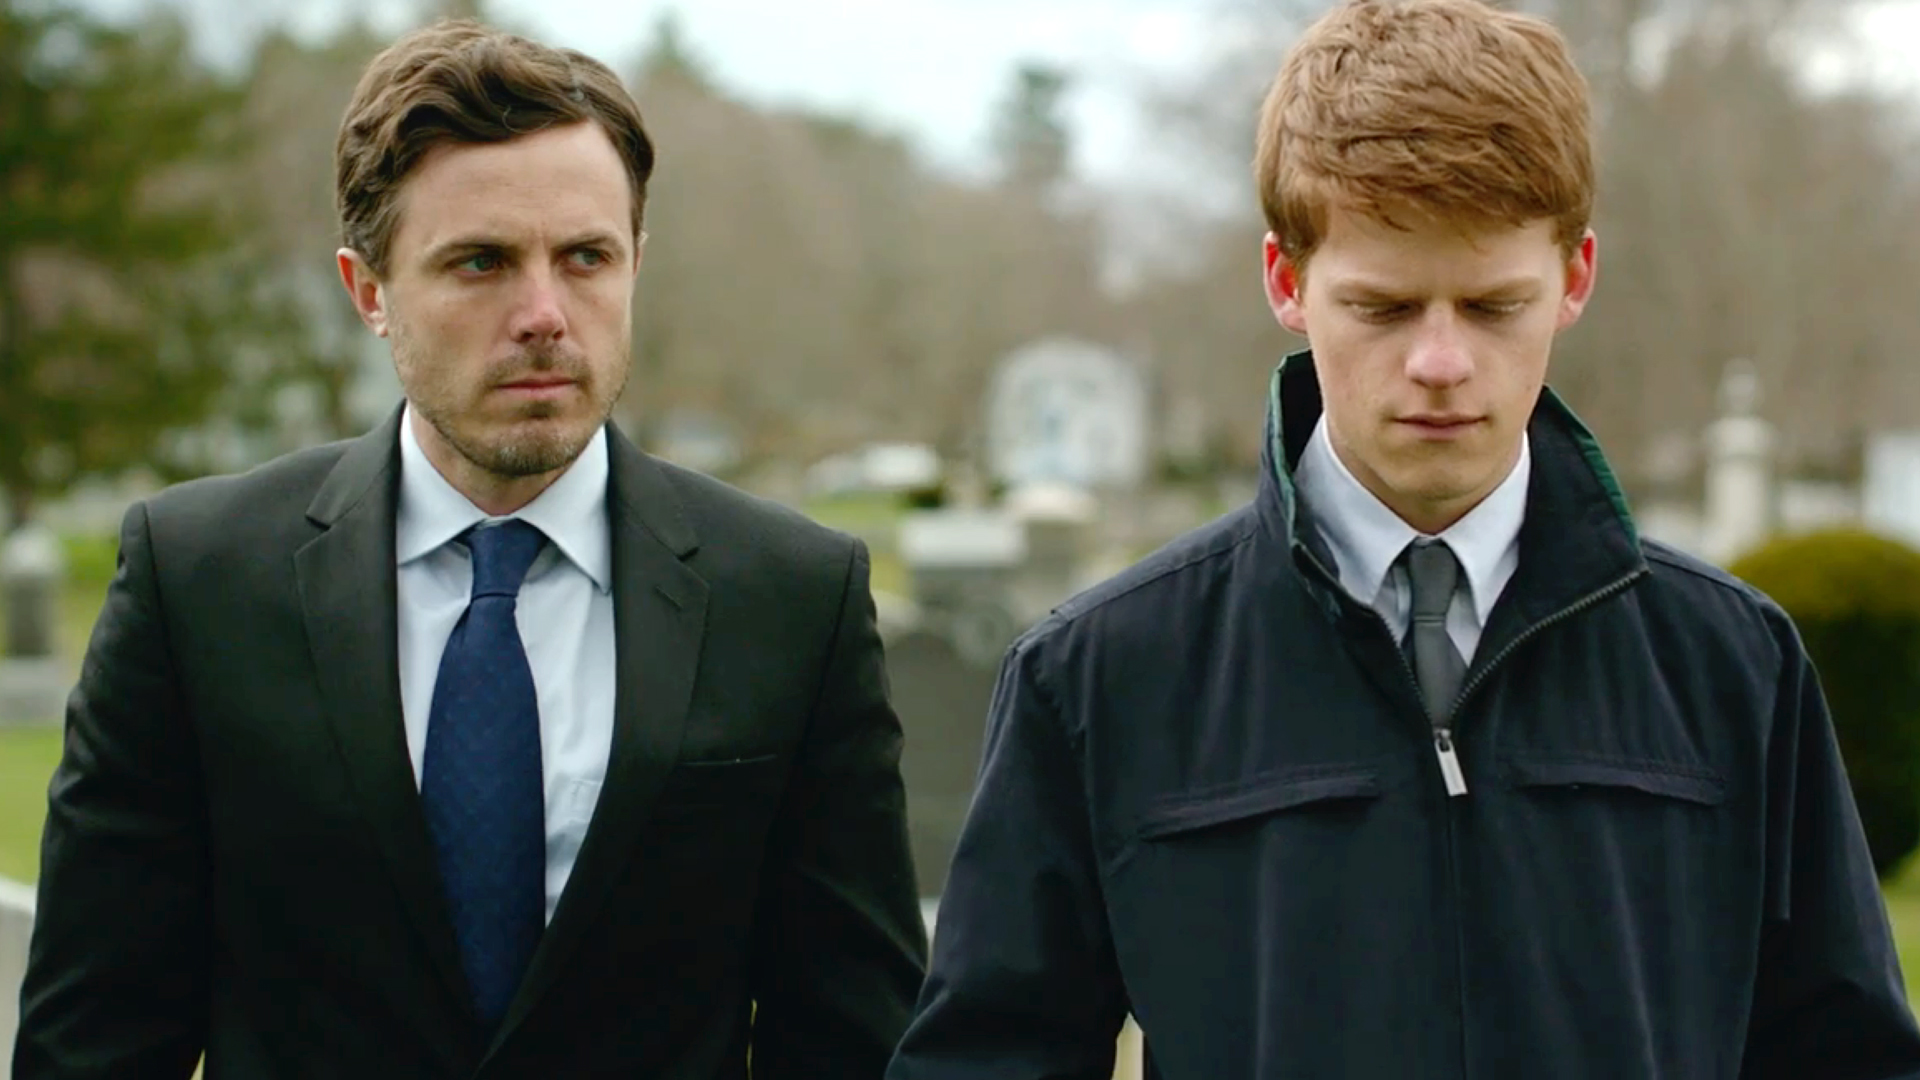 Casey Affleck and Lucas Hodges in Manchester By The Sea